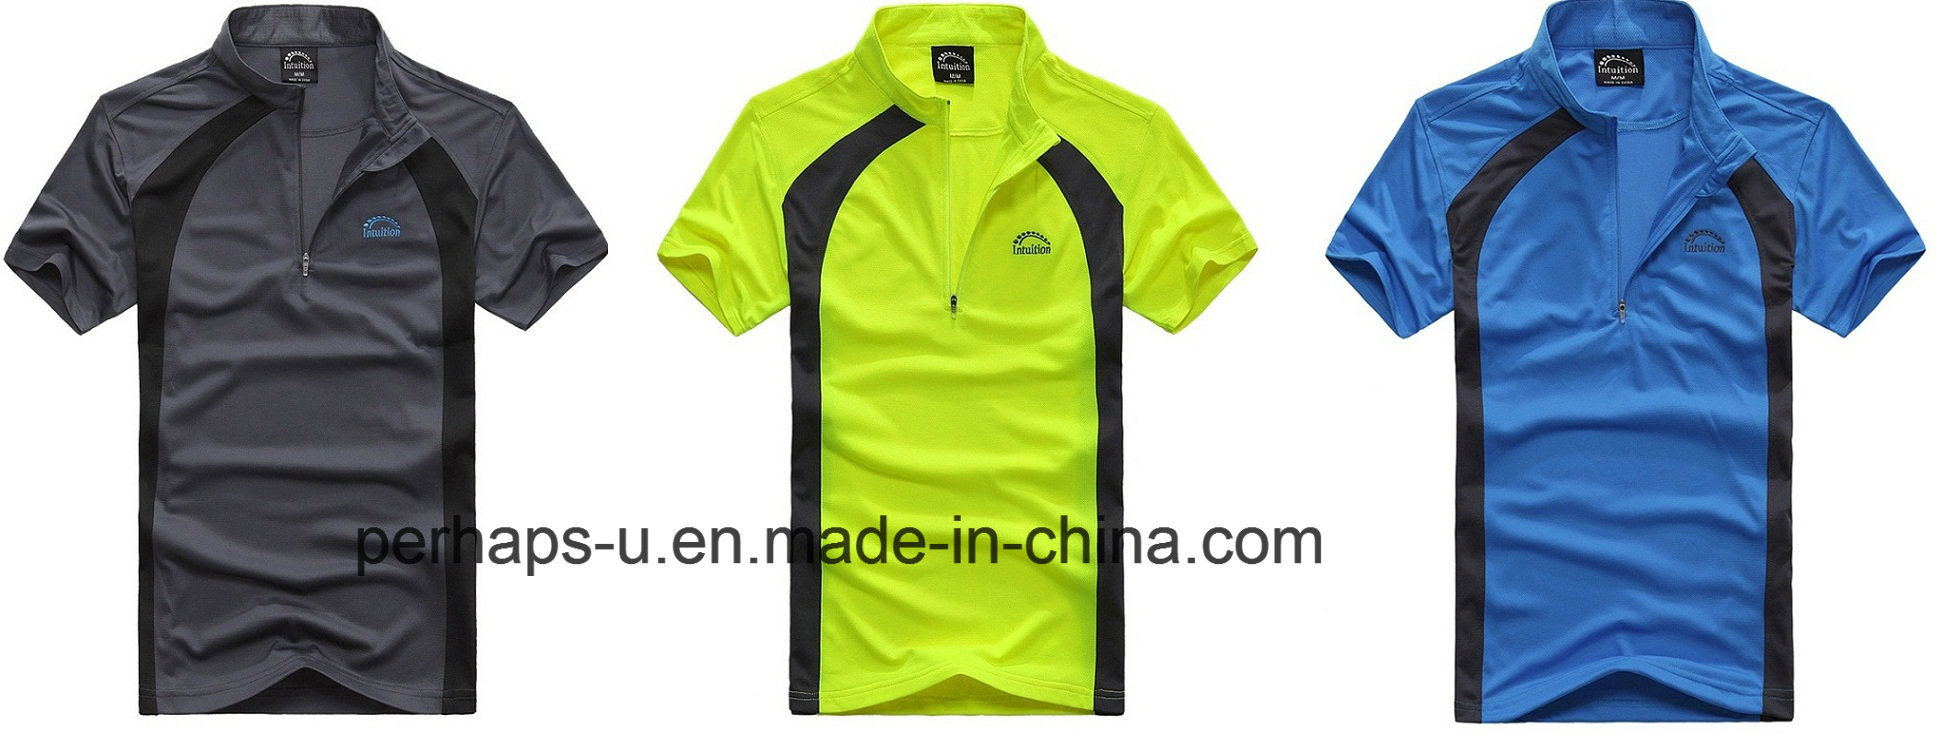 Quick-Drying Mesh Material Mens Cycling Sport Jersey